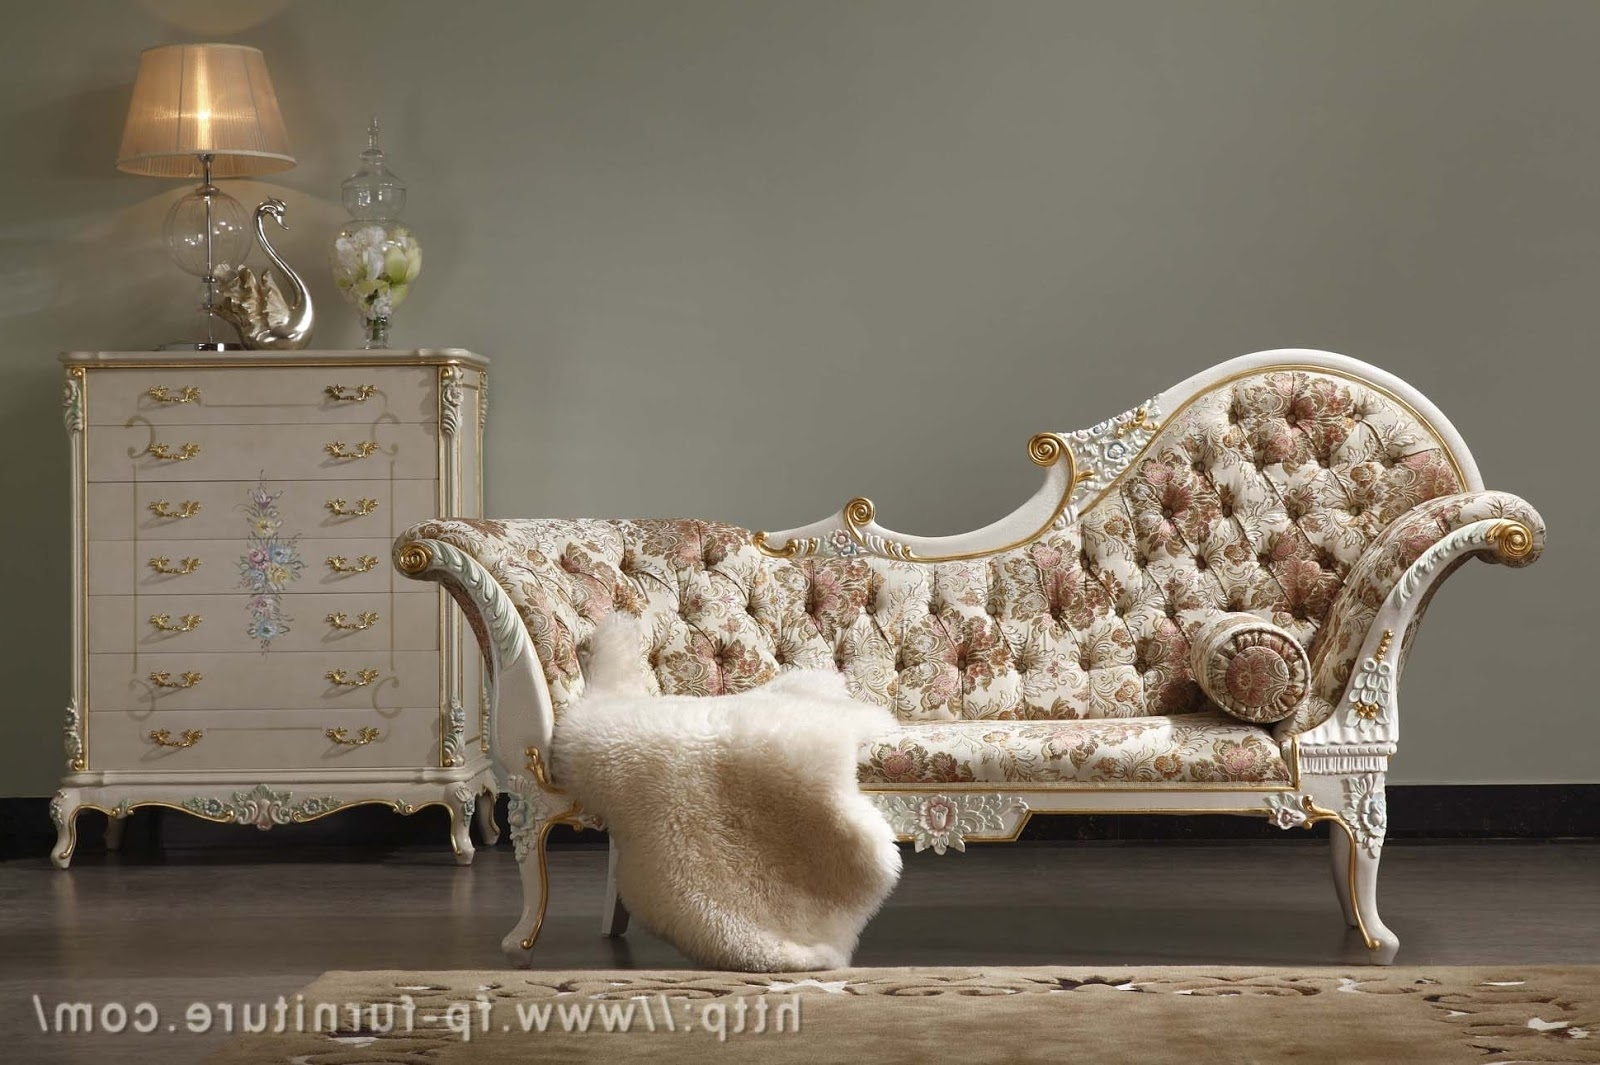 Filiphs Palladio: Italian Classic Hand Carved Royal Furniture With Regard To Fashionable European Chaise Lounge Chairs (View 3 of 15)